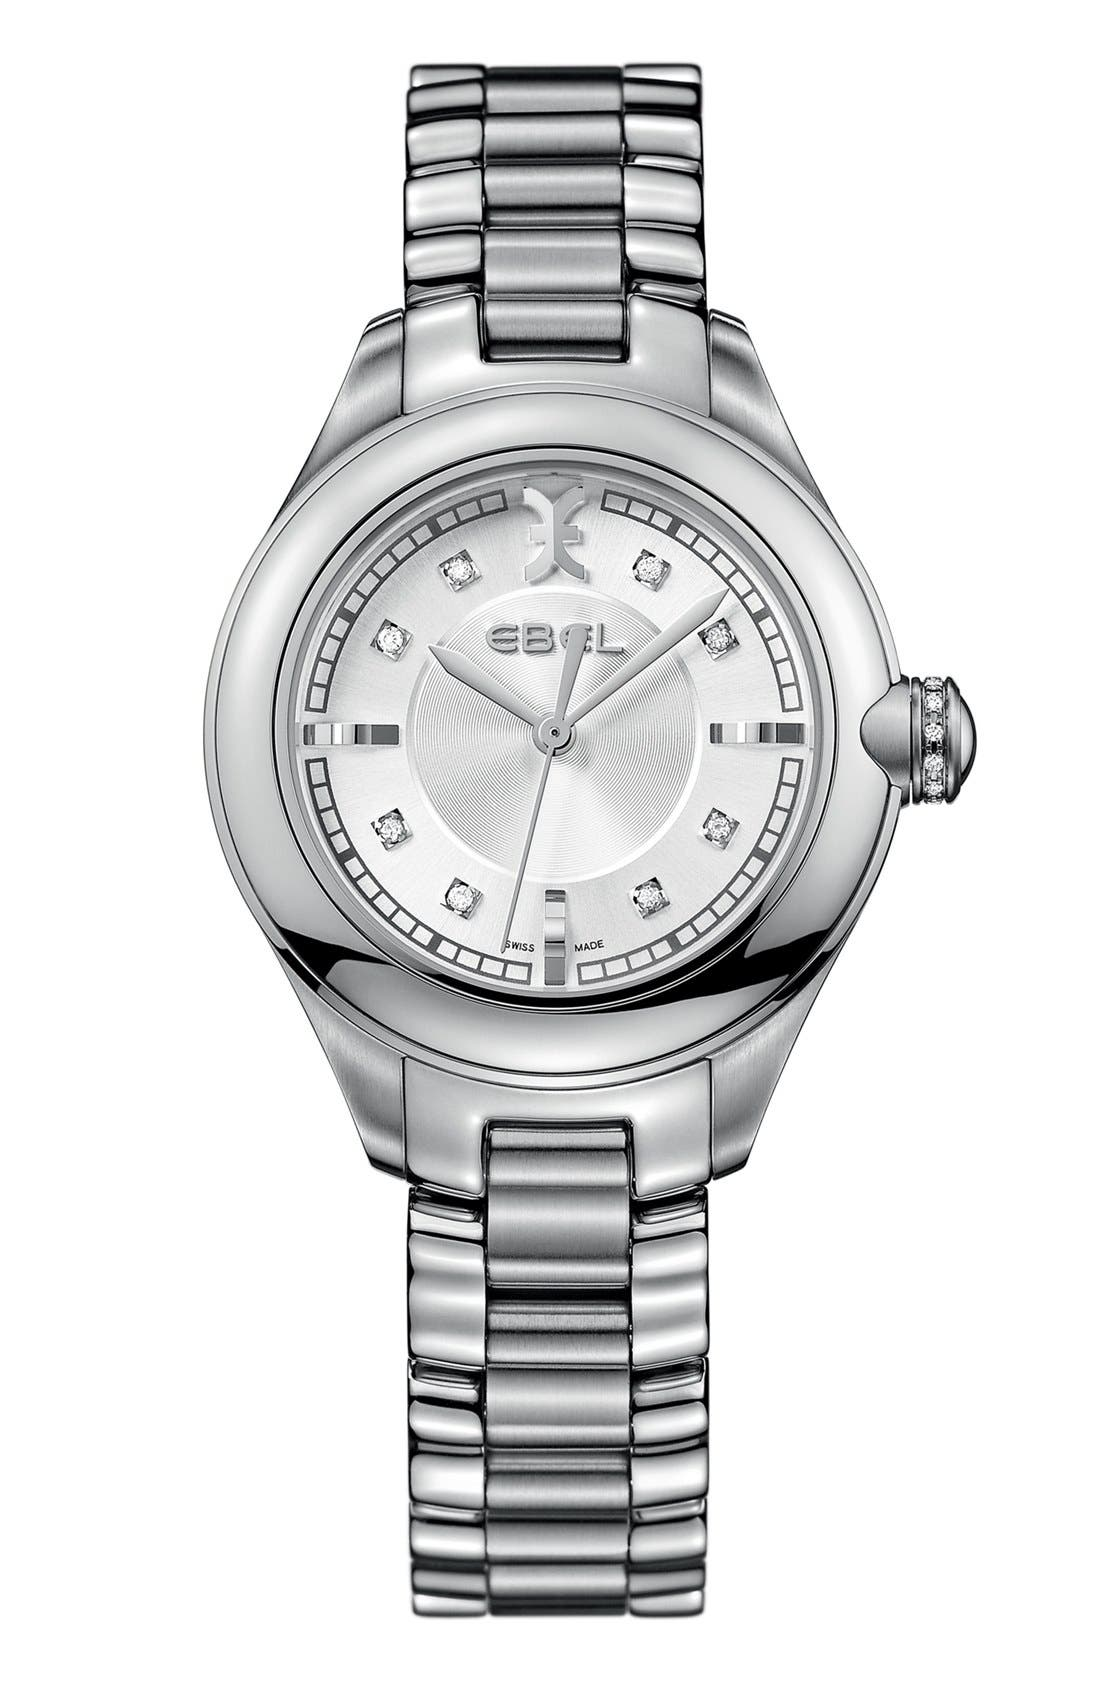 Main Image - EBEL 'Onde' Diamond Index Bracelet Watch, 30mm